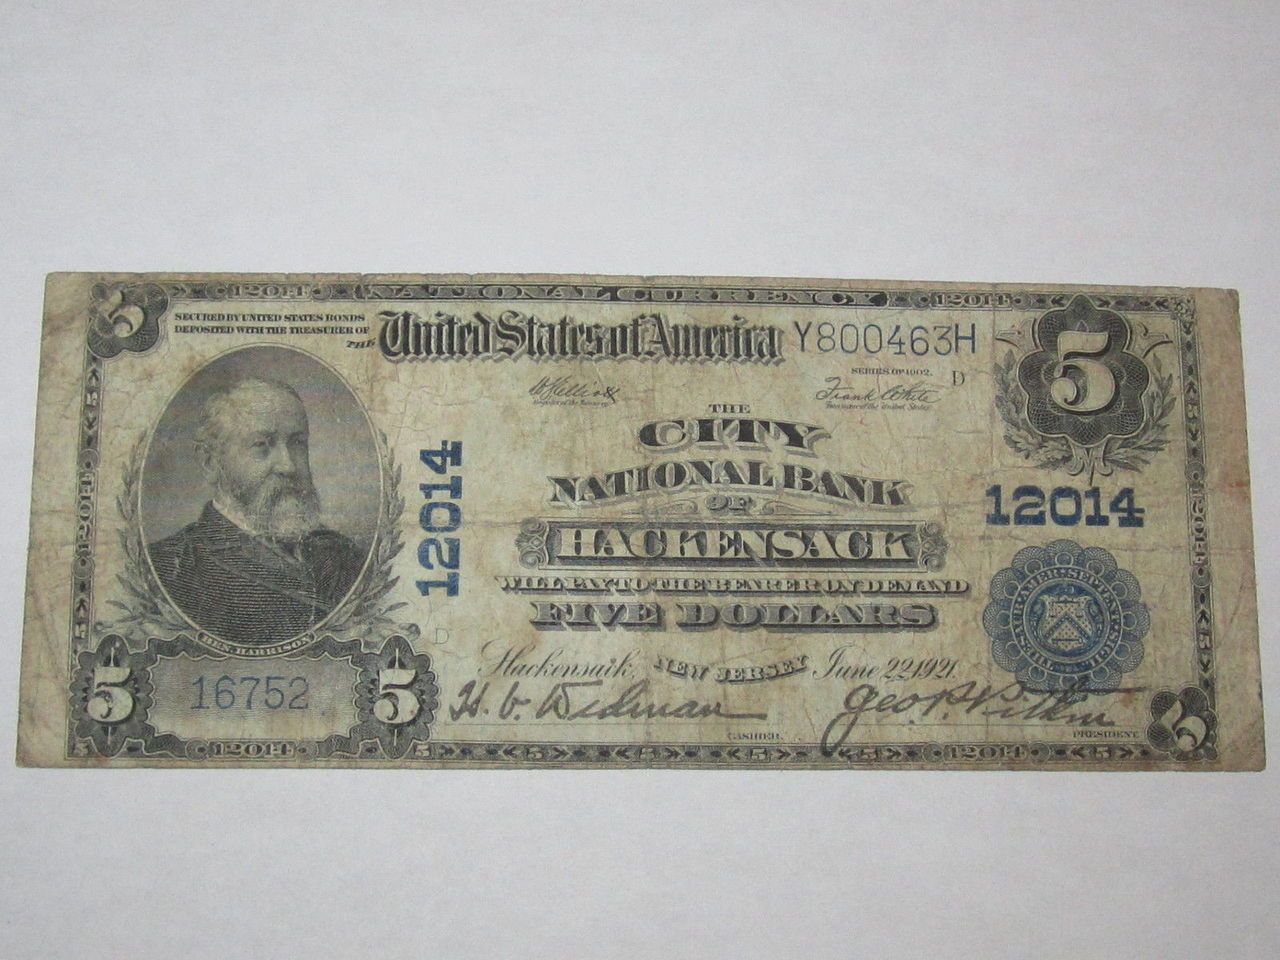 $5 1902 Hackensack New Jersey NJ National Currency Bank Note Bill! Ch. #12014 http://www.collectiblenotes.com/5-1902-hackensack-new-jersey-nj-national-currency-bank-note-bill-ch-12014/